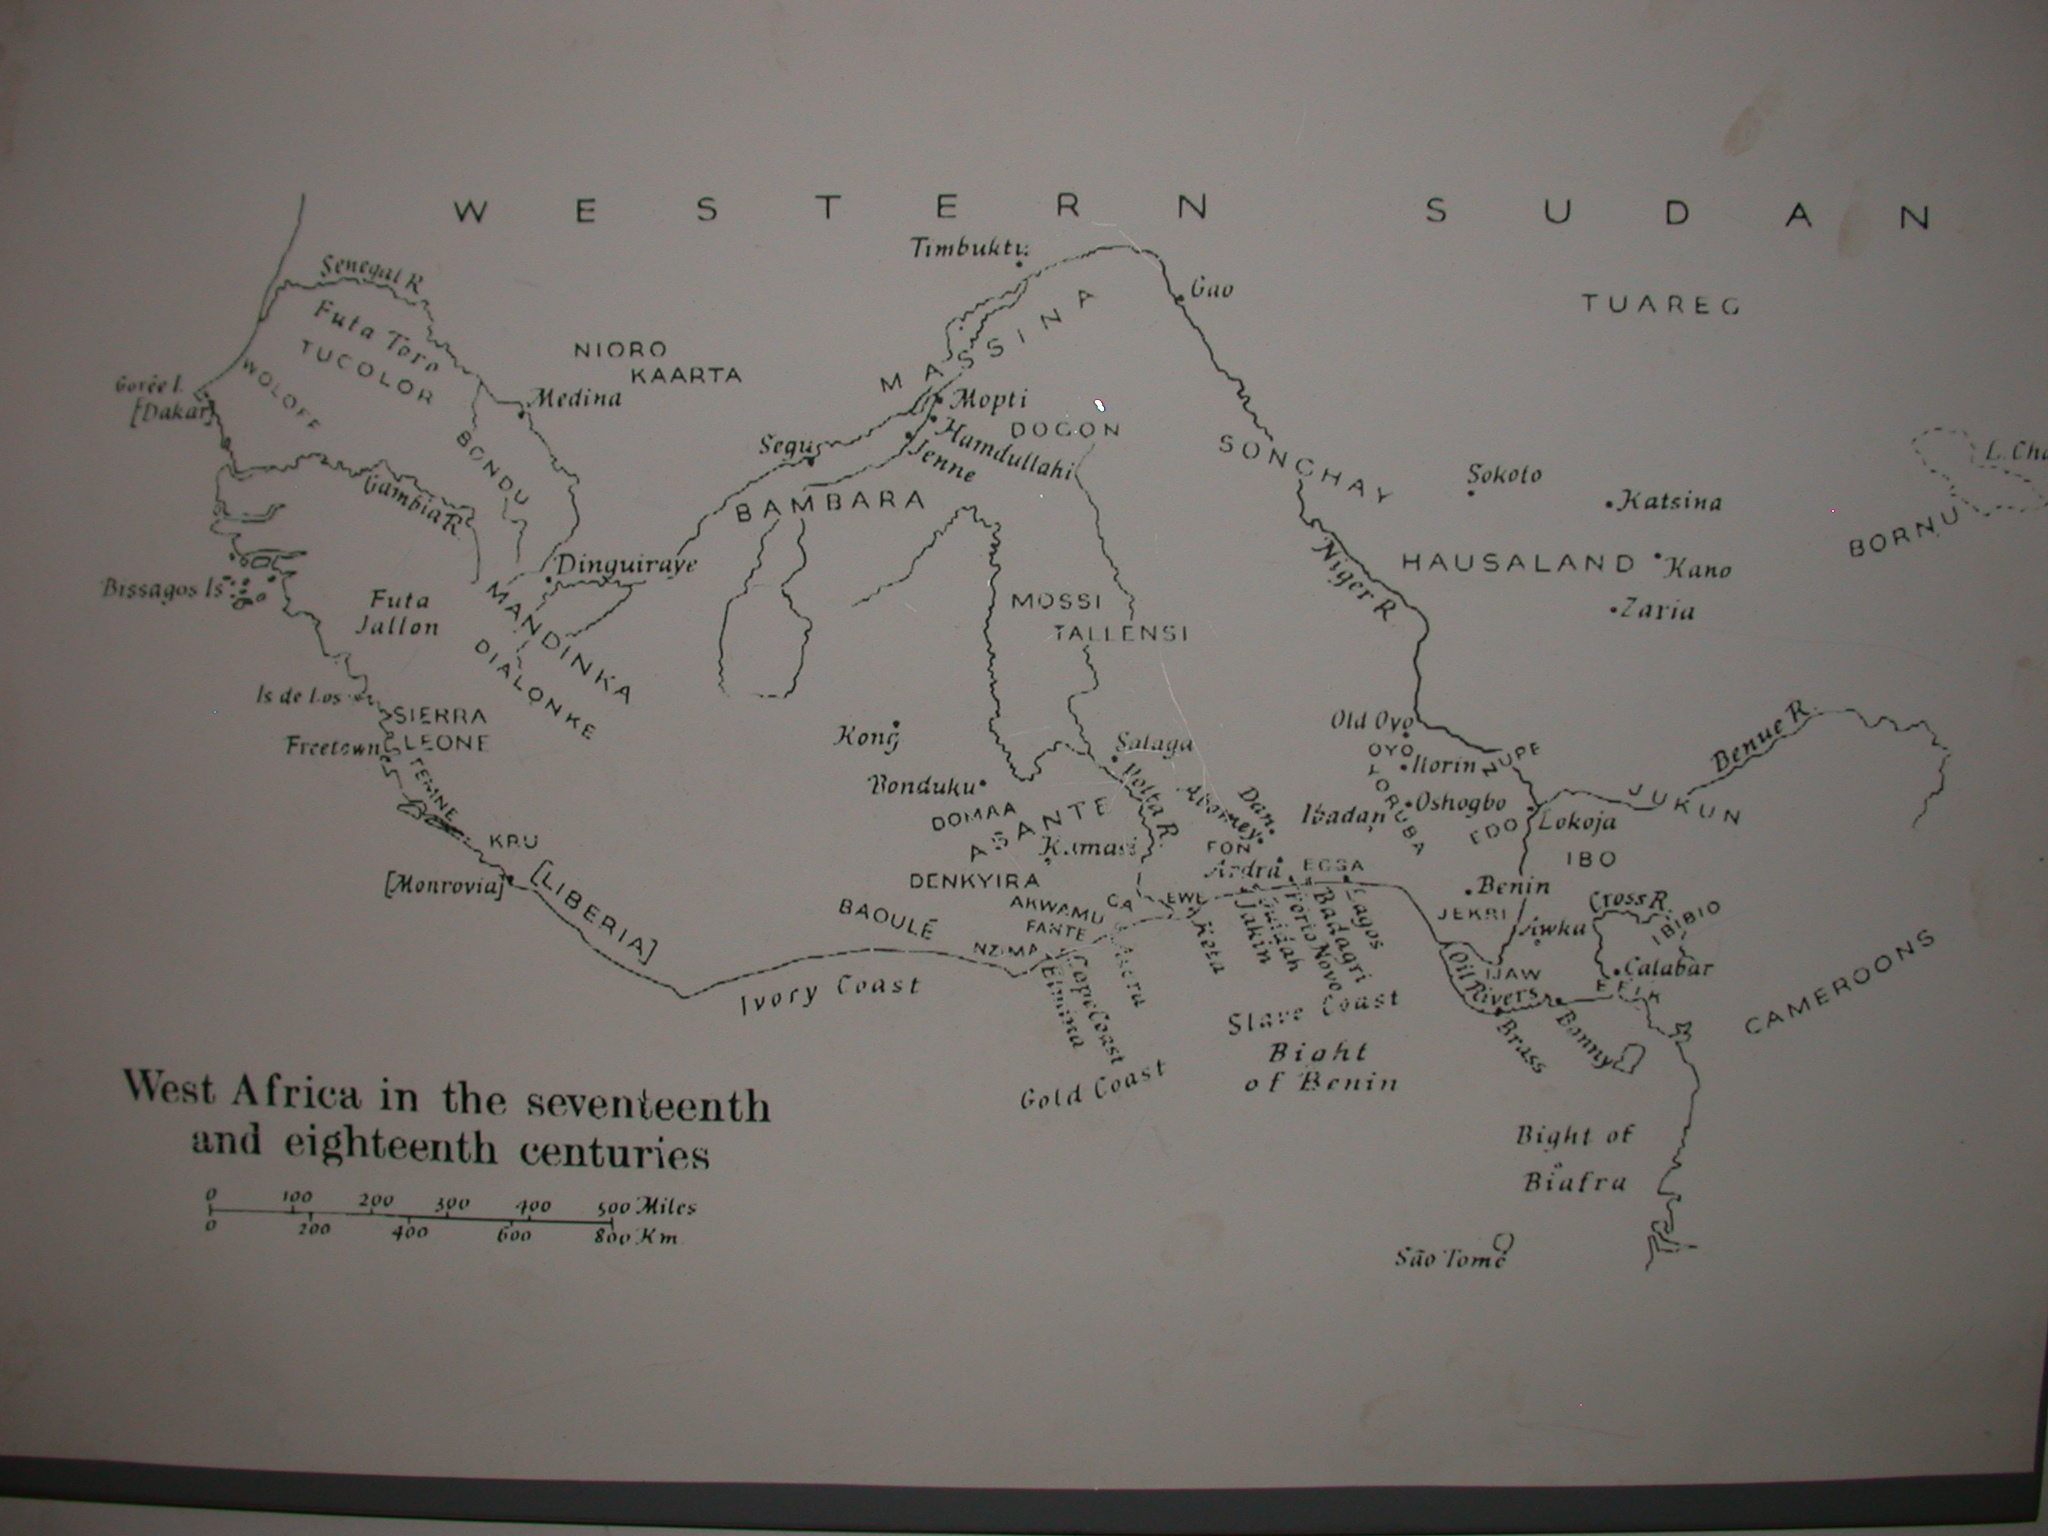 Map of West Africa in 17th and 18th Centuries, National Museum, Accra, Ghana